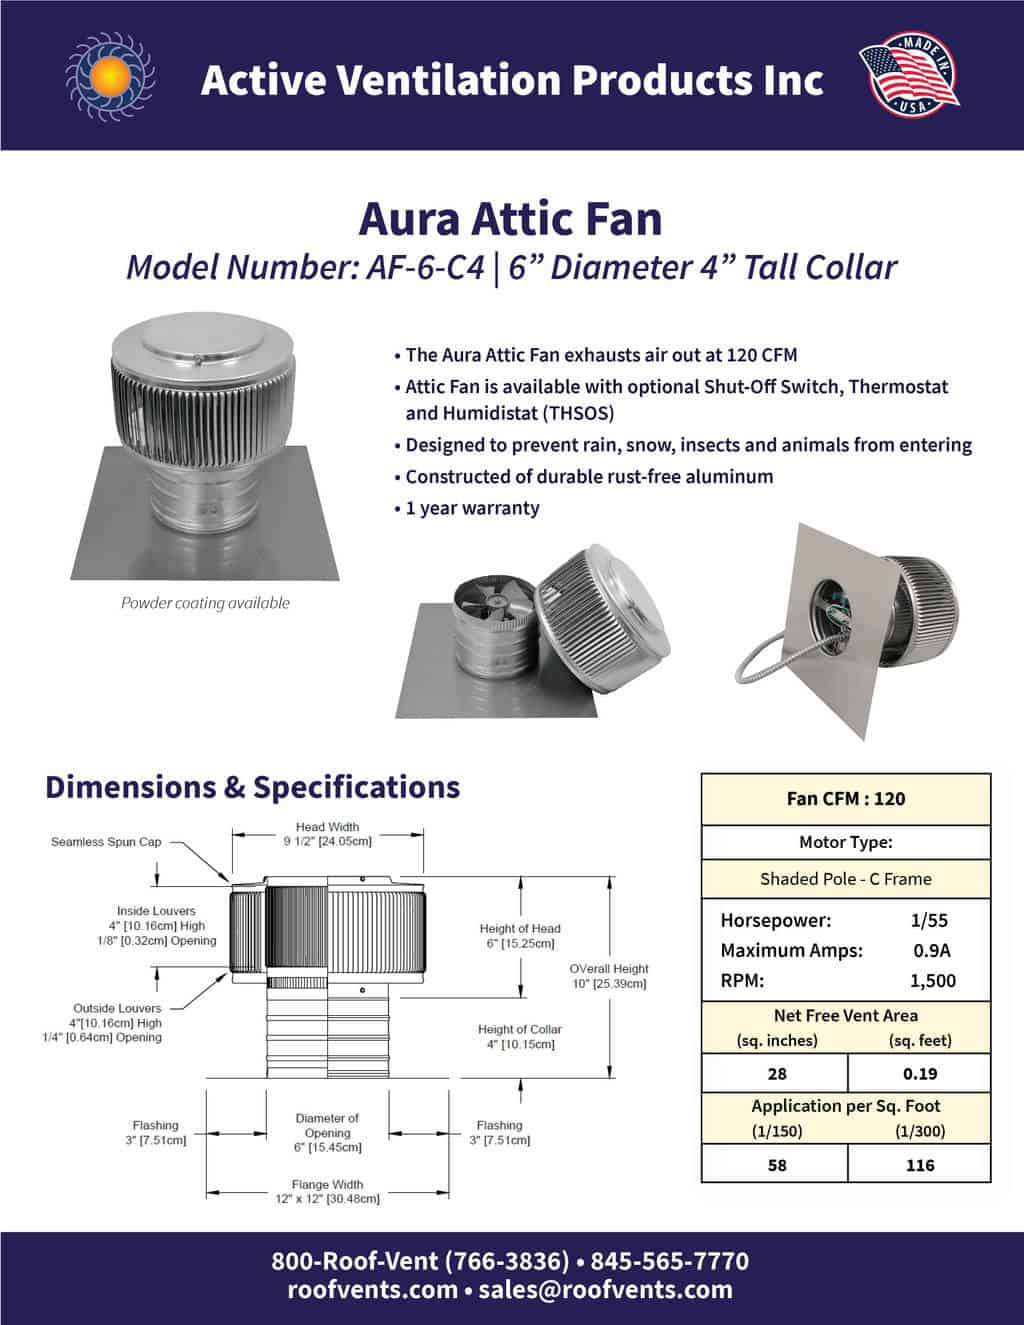 AF-6-C4-brochure An Exhaust Attic Fan